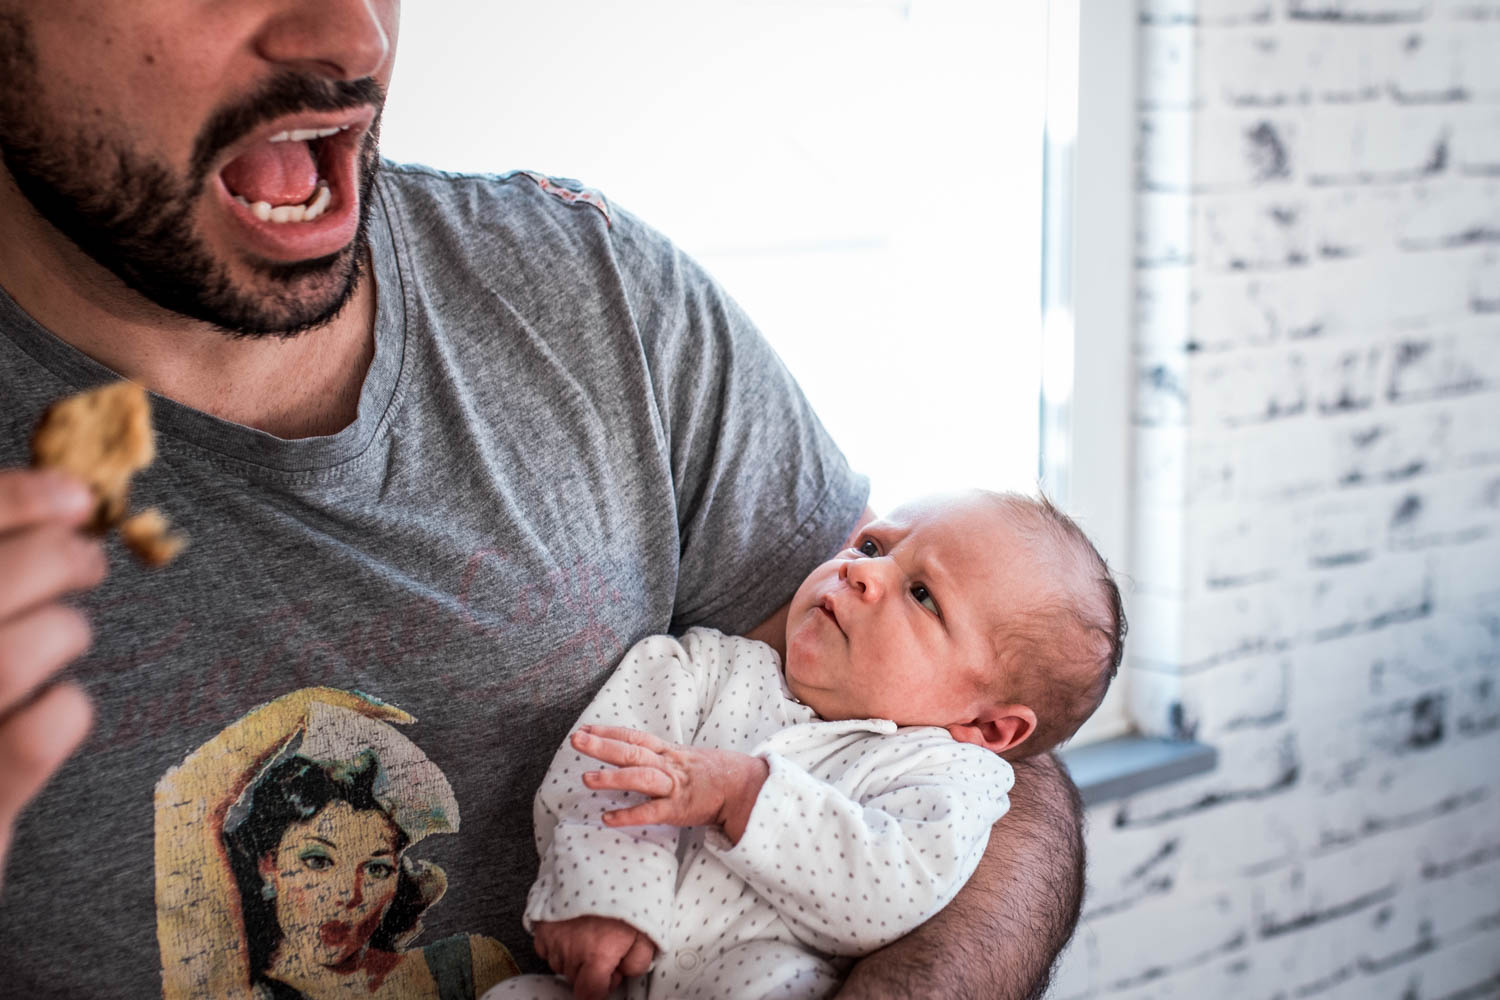 A father holds his newborn son in his arms and his son looks up at him during this at-home family photo session in Bristol.